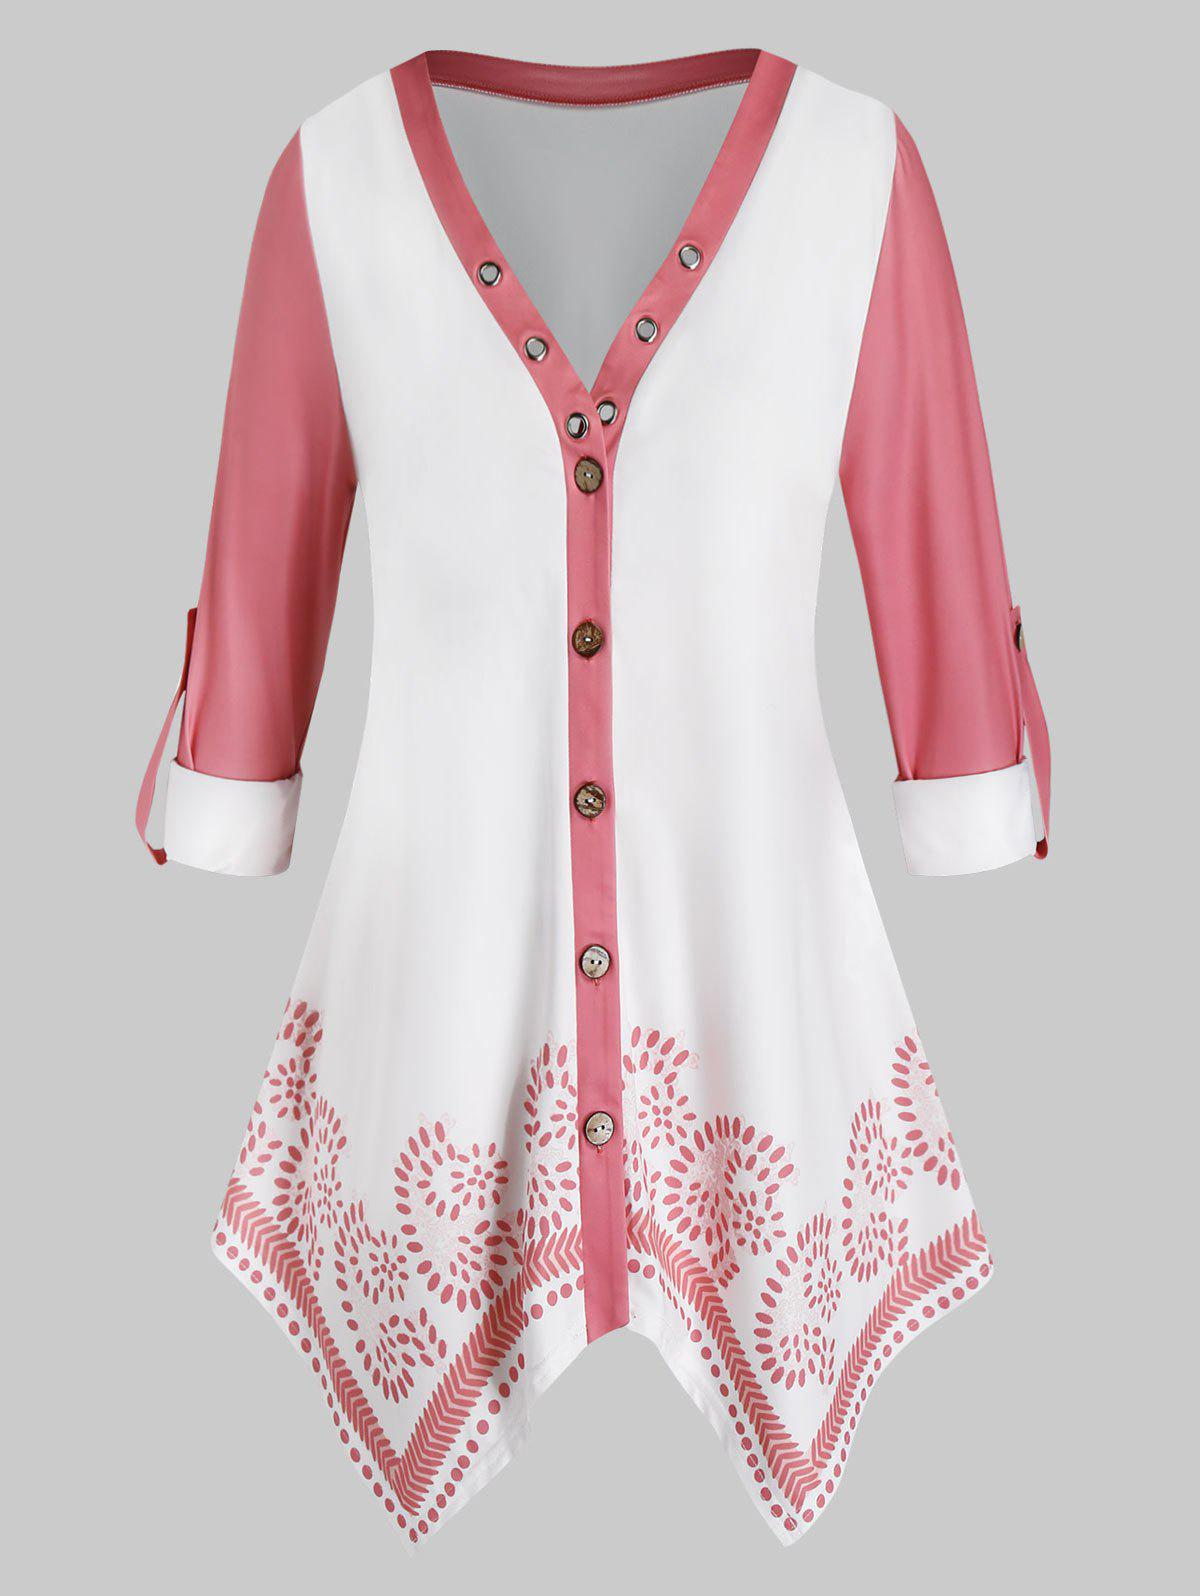 Plus Size Roll Up Sleeves Button Up Handkerchief Blouse - PIG PINK 5X